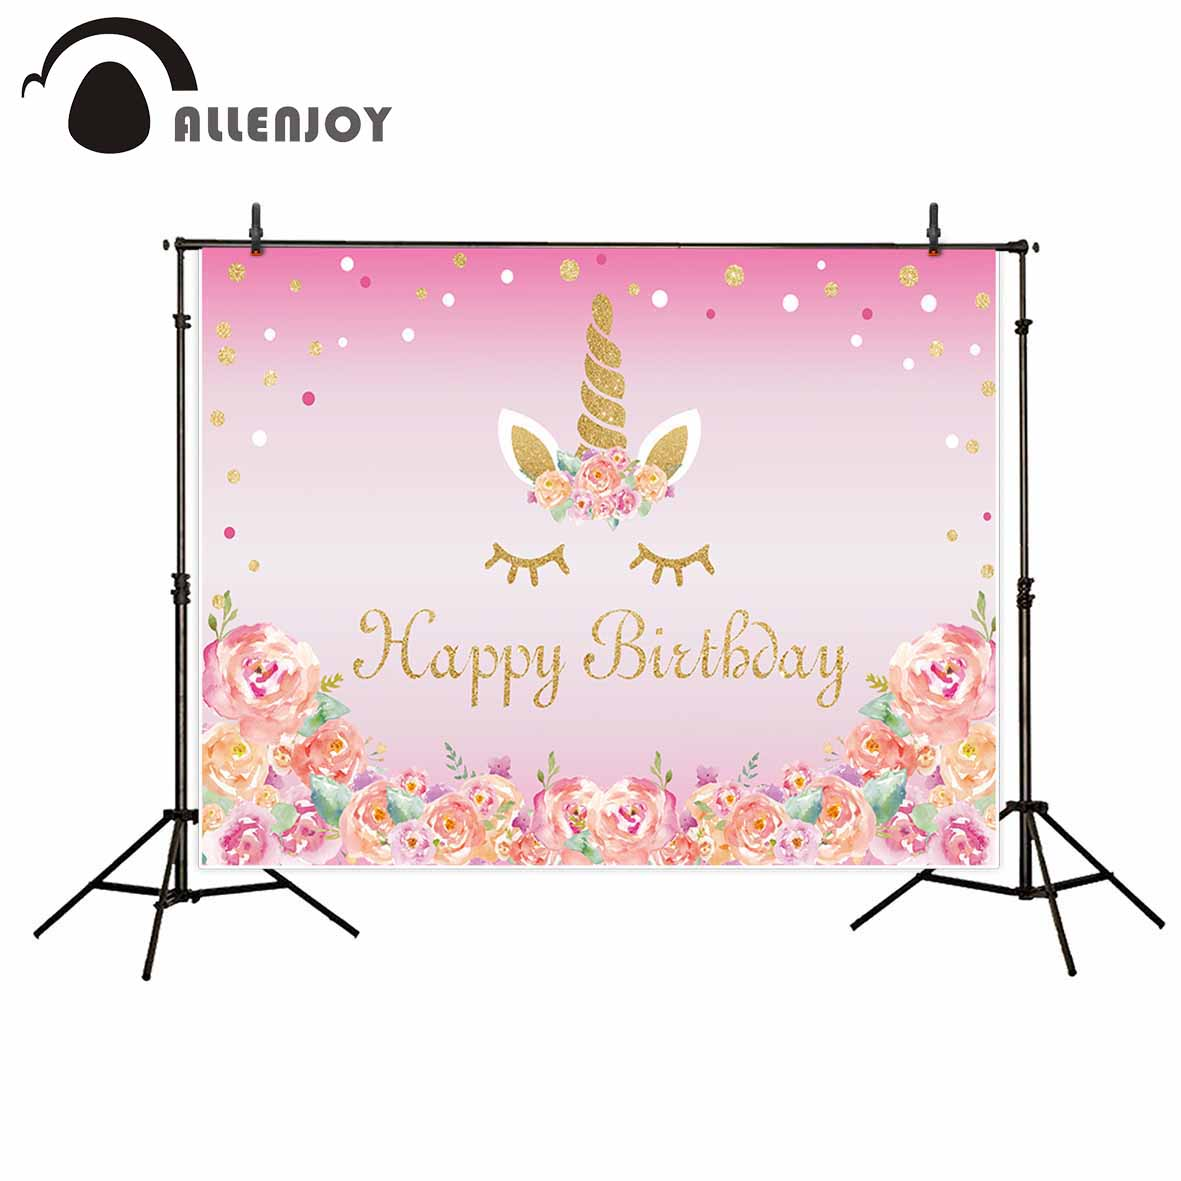 Allenjoy new photographic background Beautiful girl flower pink birthday unicorn backdrop photocall professional customize allenjoy backgrounds for photo studio white board children light illusory children new background photocall customize backdrop